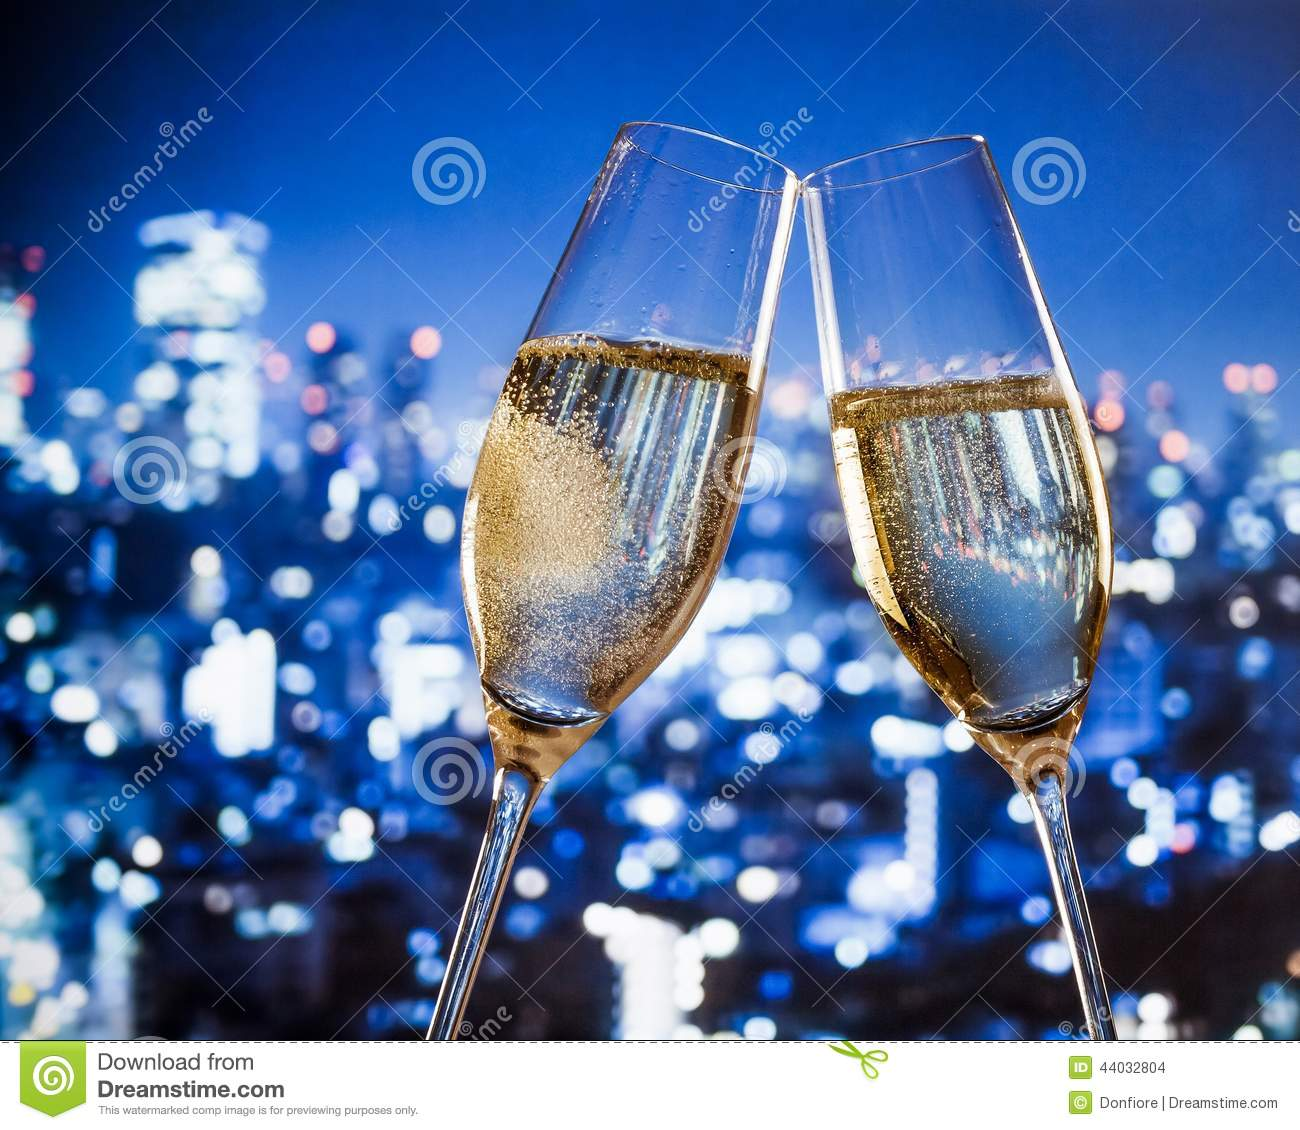 Champagne Flutes With Golden Bubbles On Blue City Night